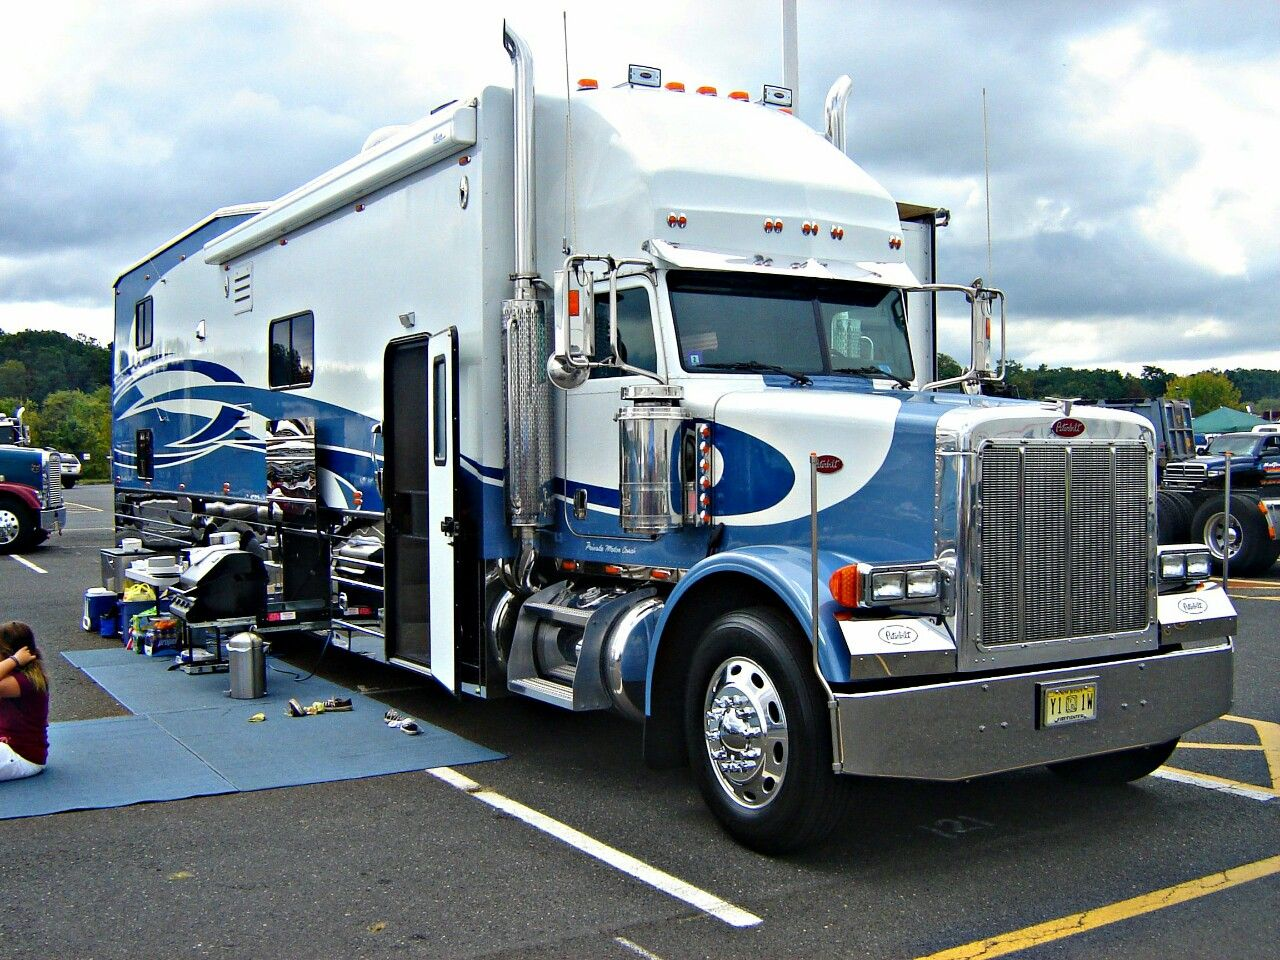 Peterbilt custom 379 RV | Petebilt Rv | Pinterest ...